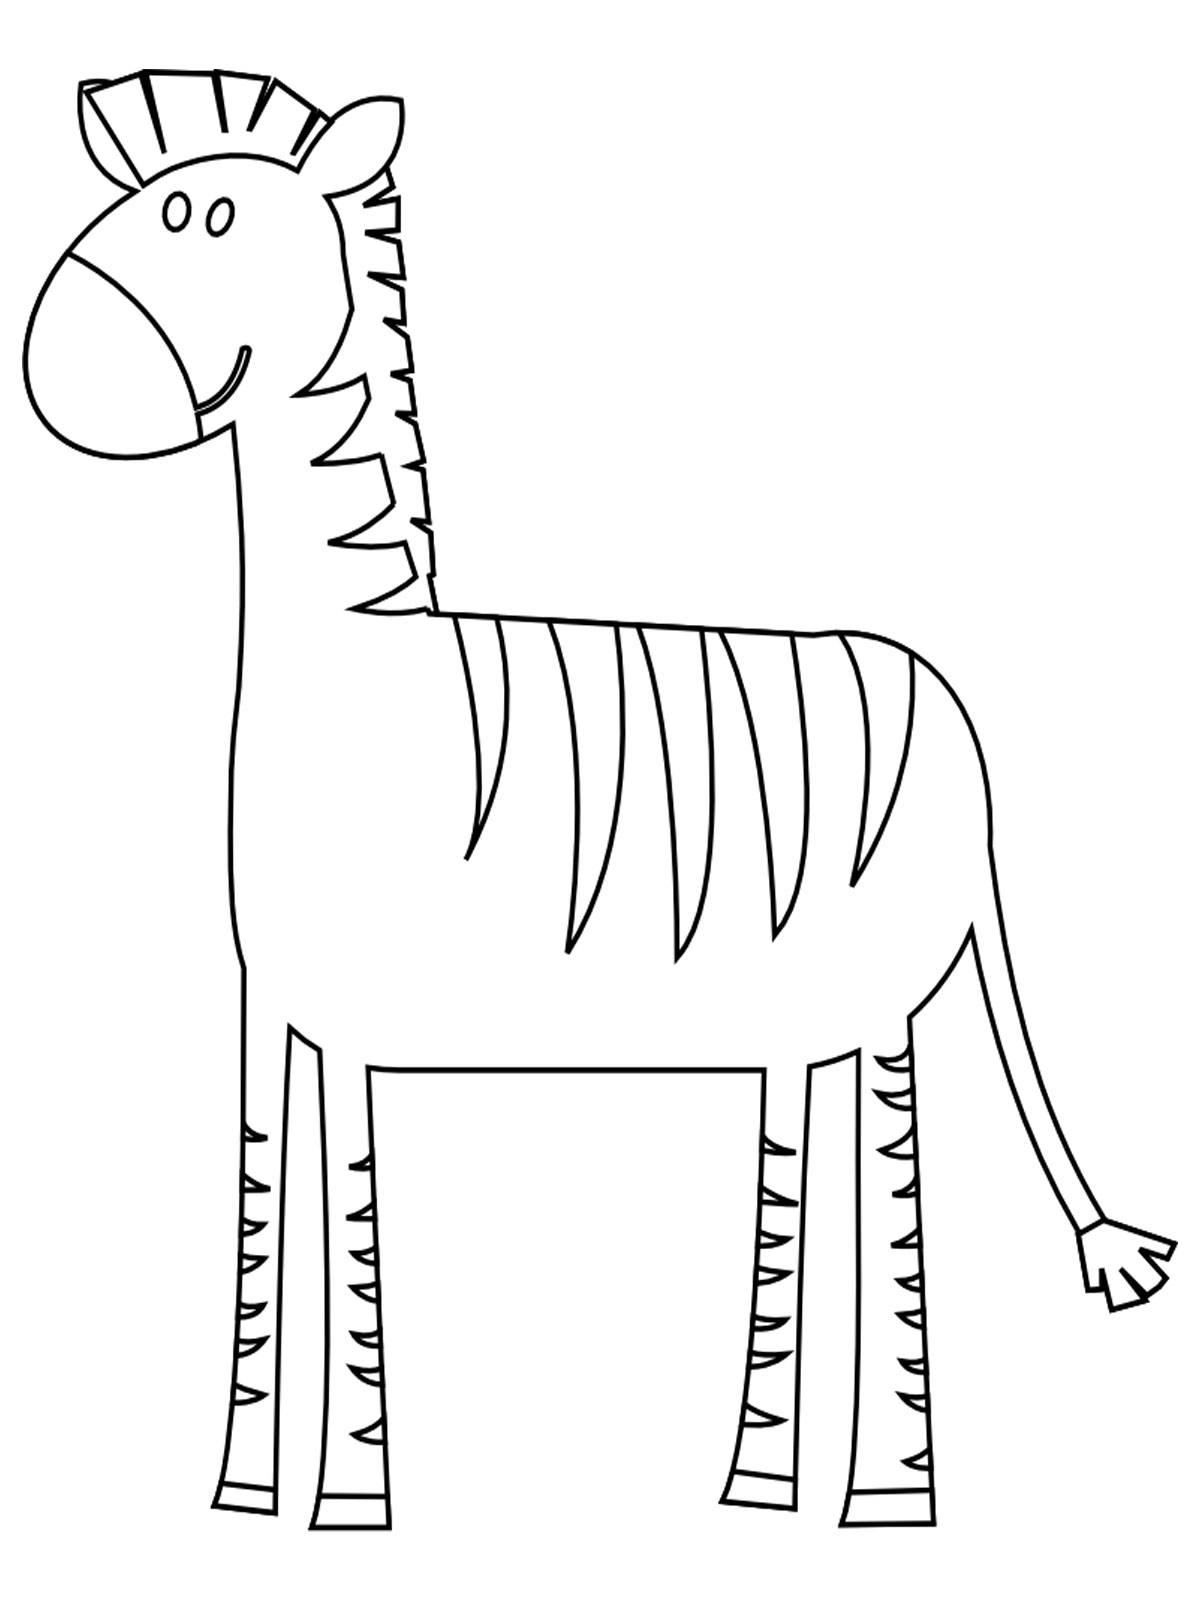 free zebra coloring pages to print there are 7 zebra coloring pages